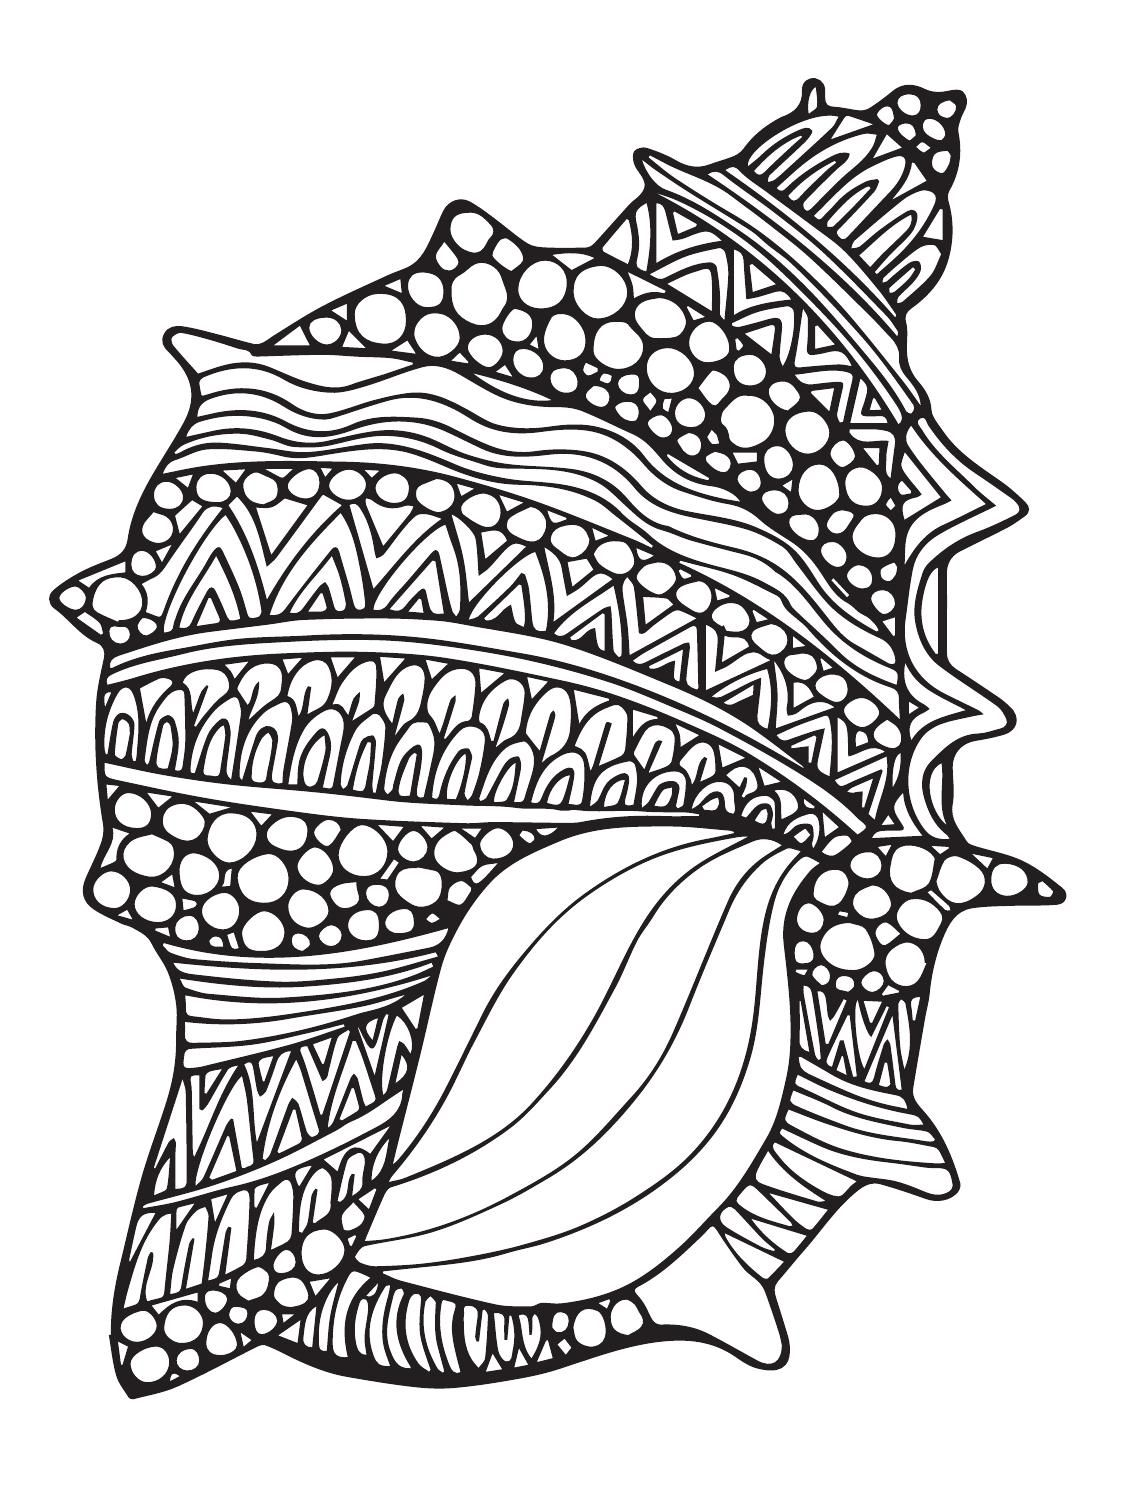 sea horse zentangle coloring page from zentangle category select